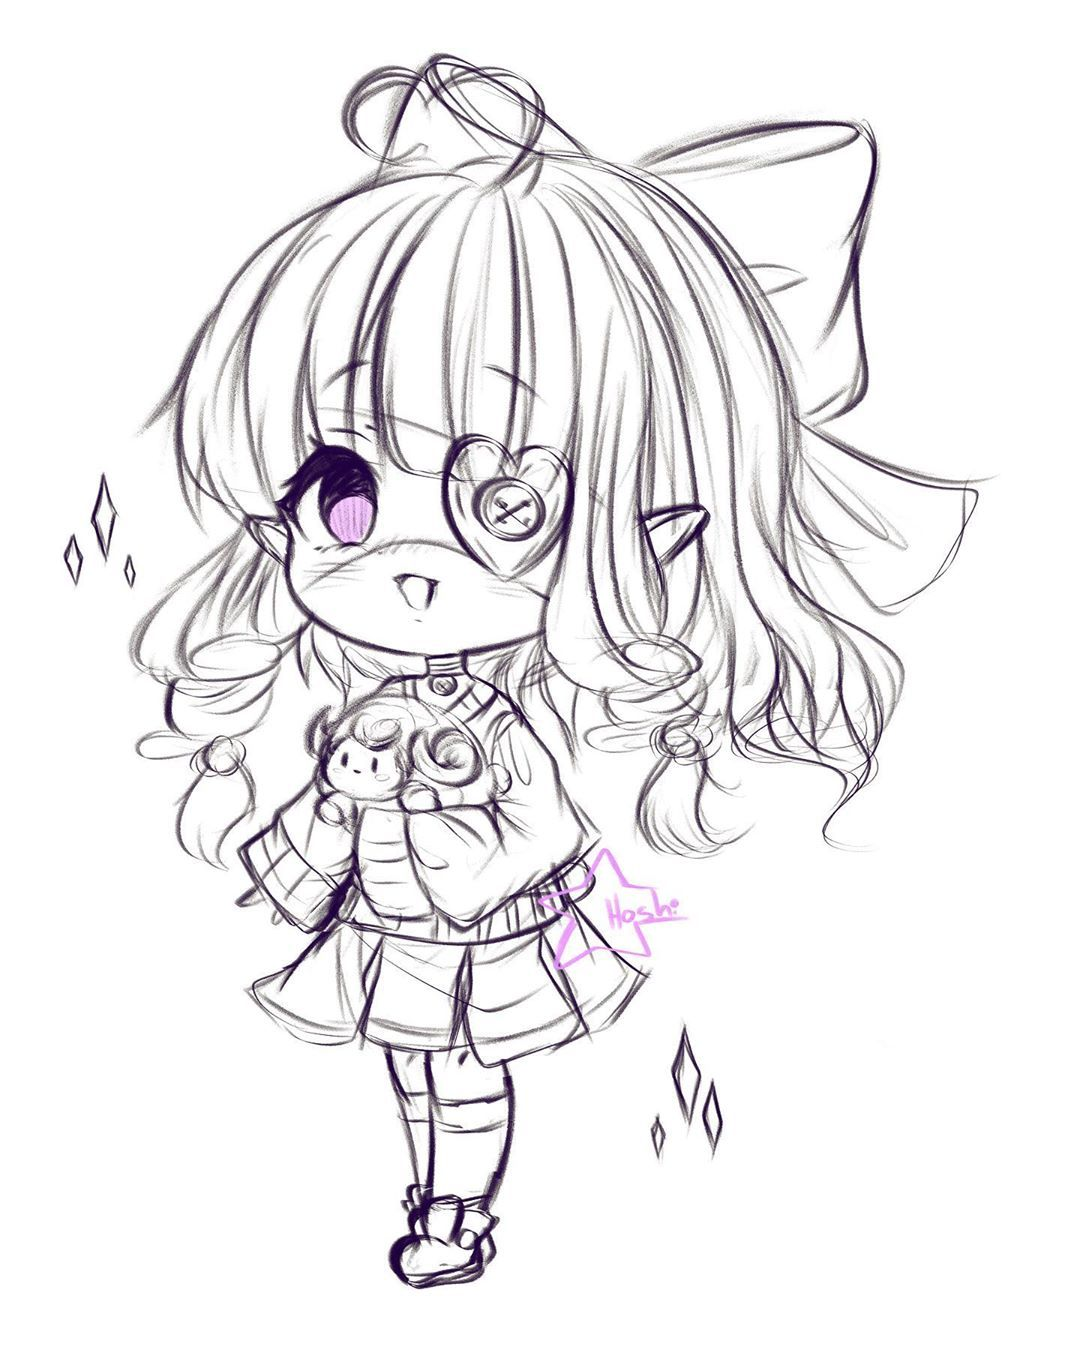 Chibi Sketch Japanese Street Fashion Part 2 Please Don T Steal Trace Or Using My Art Without My Permission An Chibi Sketch Anime Drawings Cute Chibi